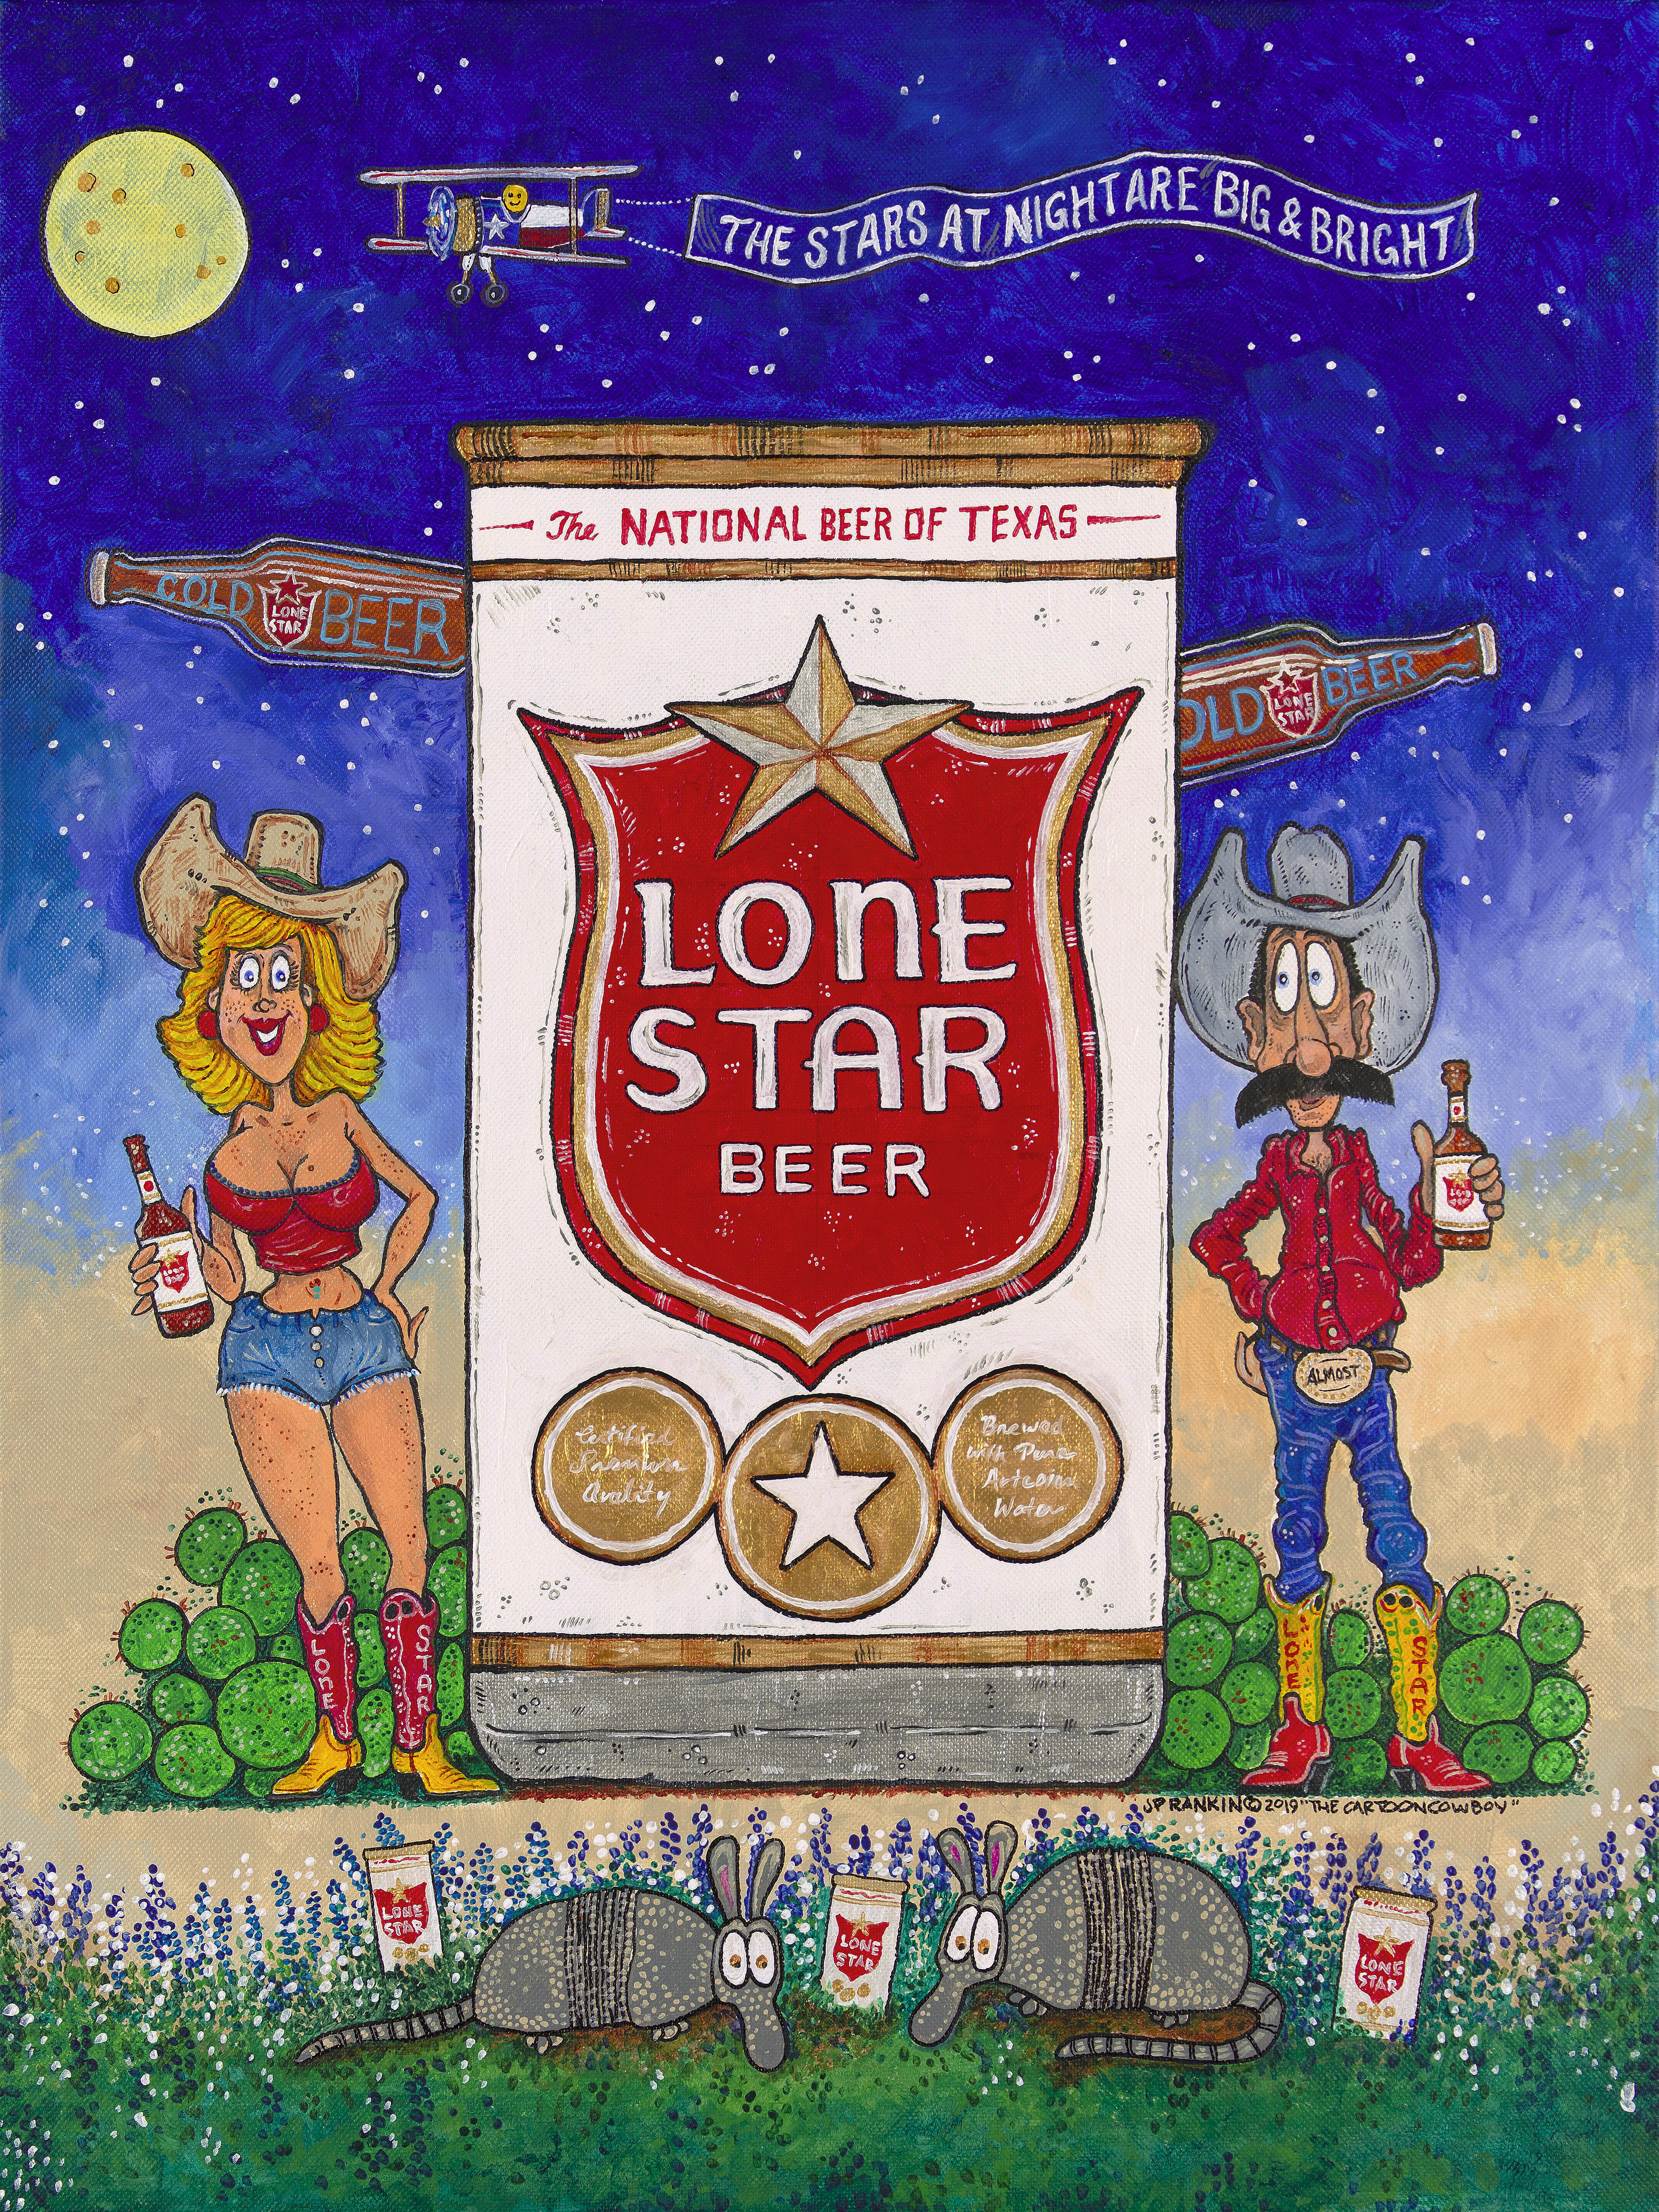 No. 2 - LONE STAR BEER